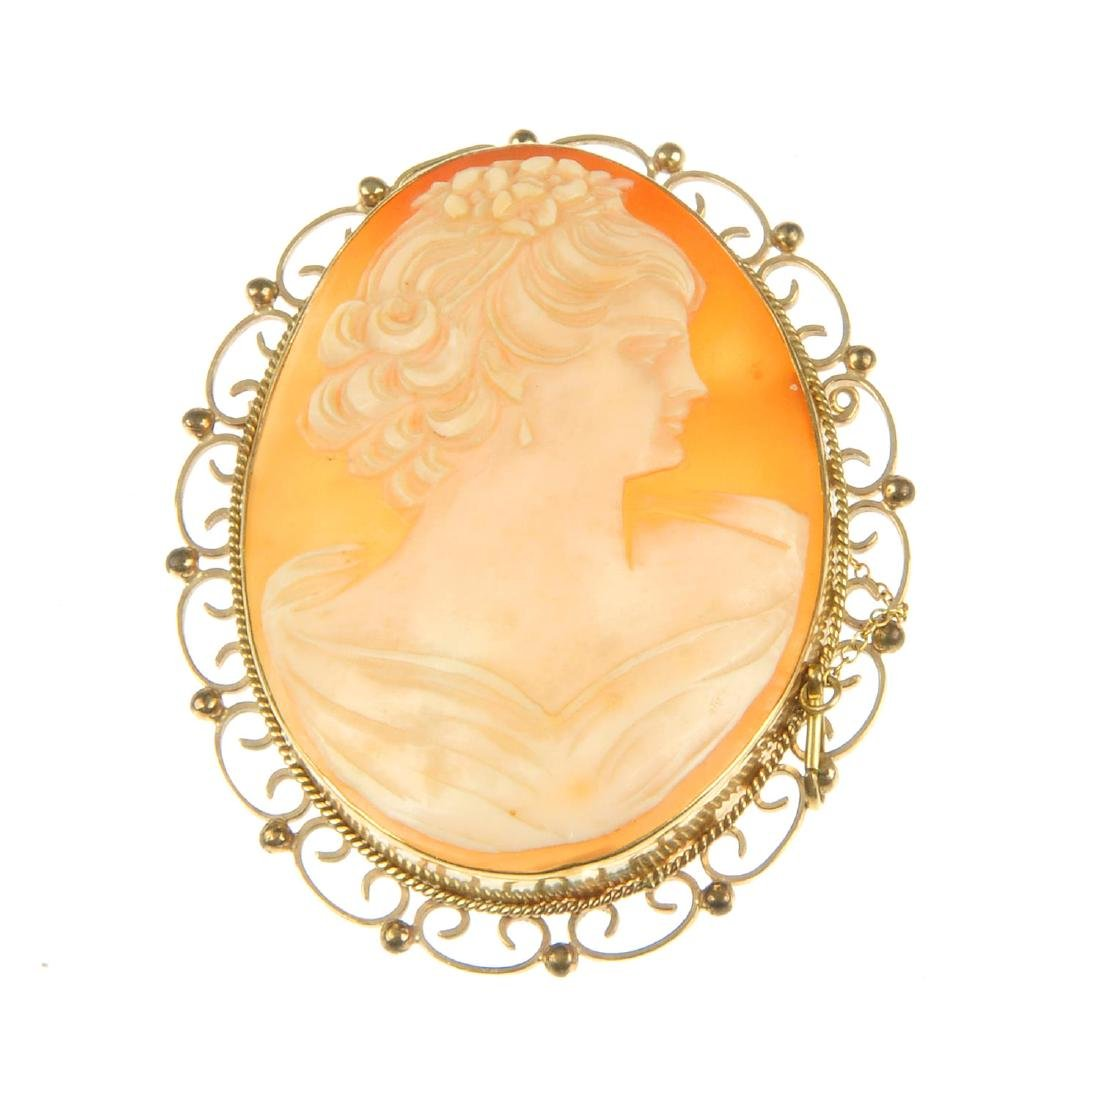 A cameo brooch and a cameo ring. The brooch of